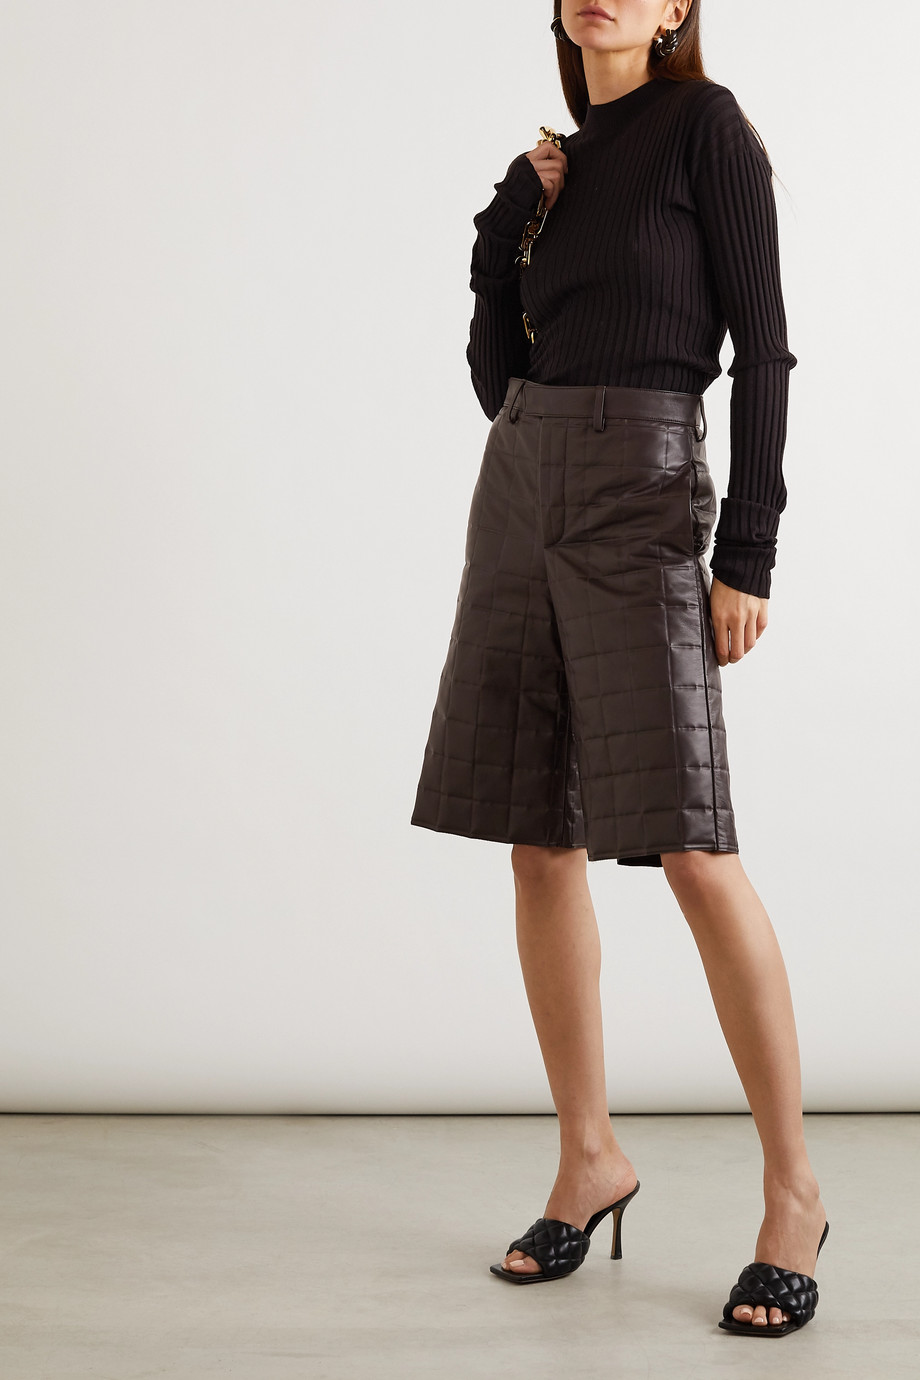 Bottega Veneta Quilted leather shorts